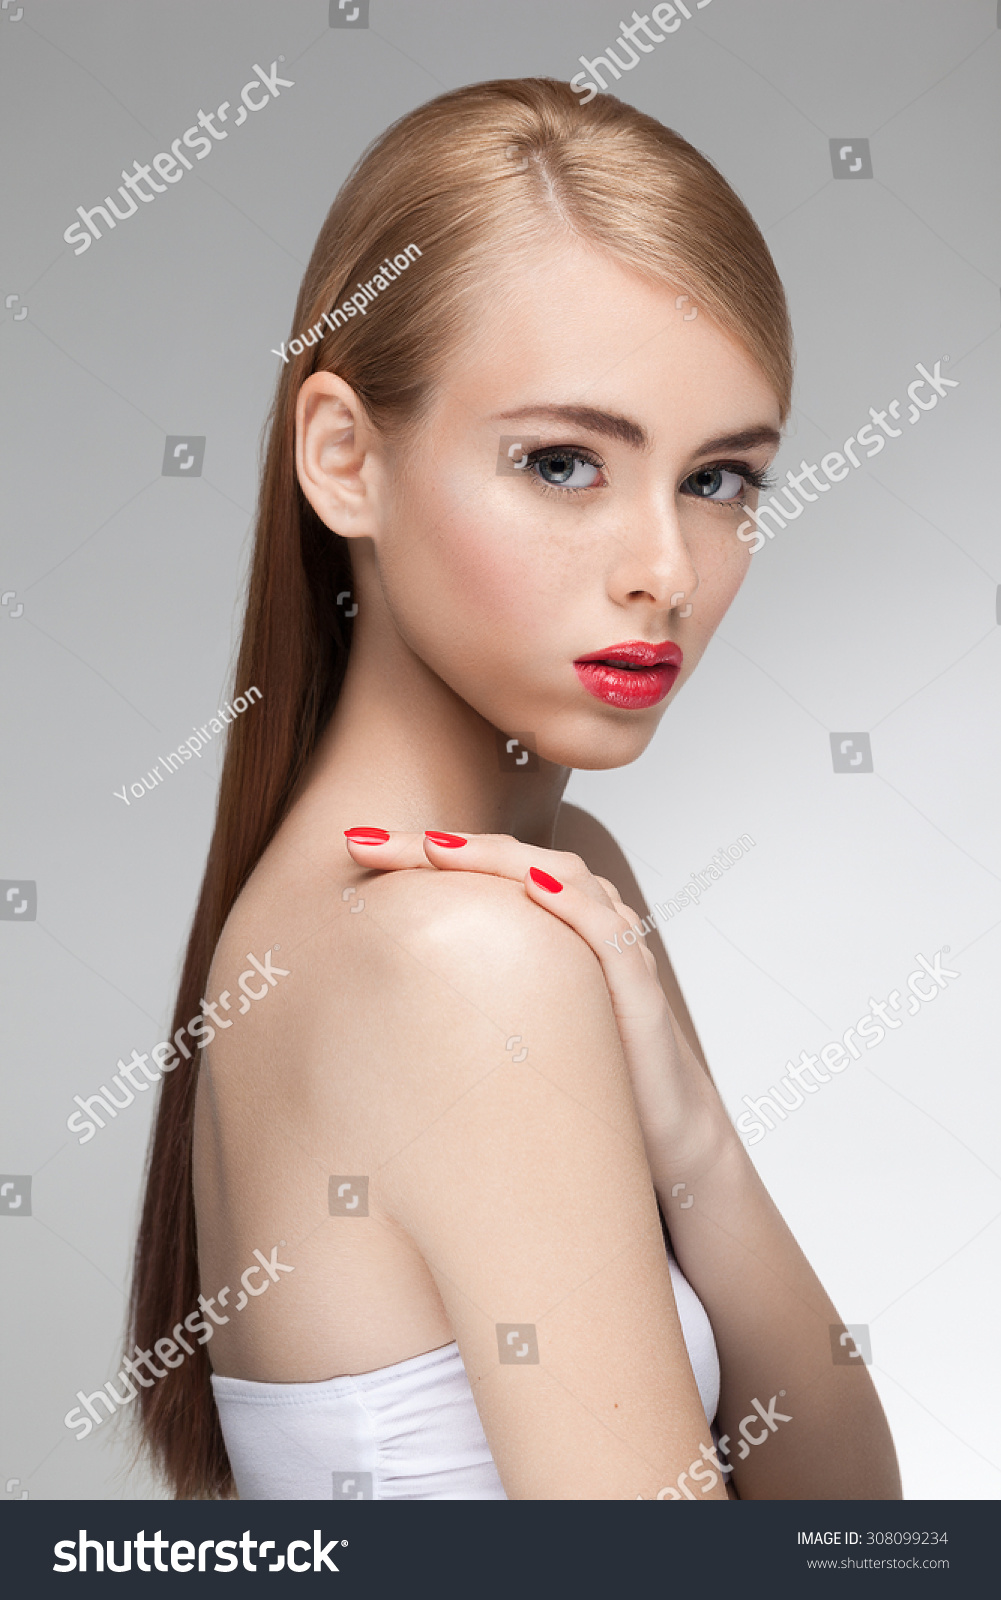 young nude model Portrait of young beautiful attractive girl model with natural fresh  beauty, perfect clean skin and